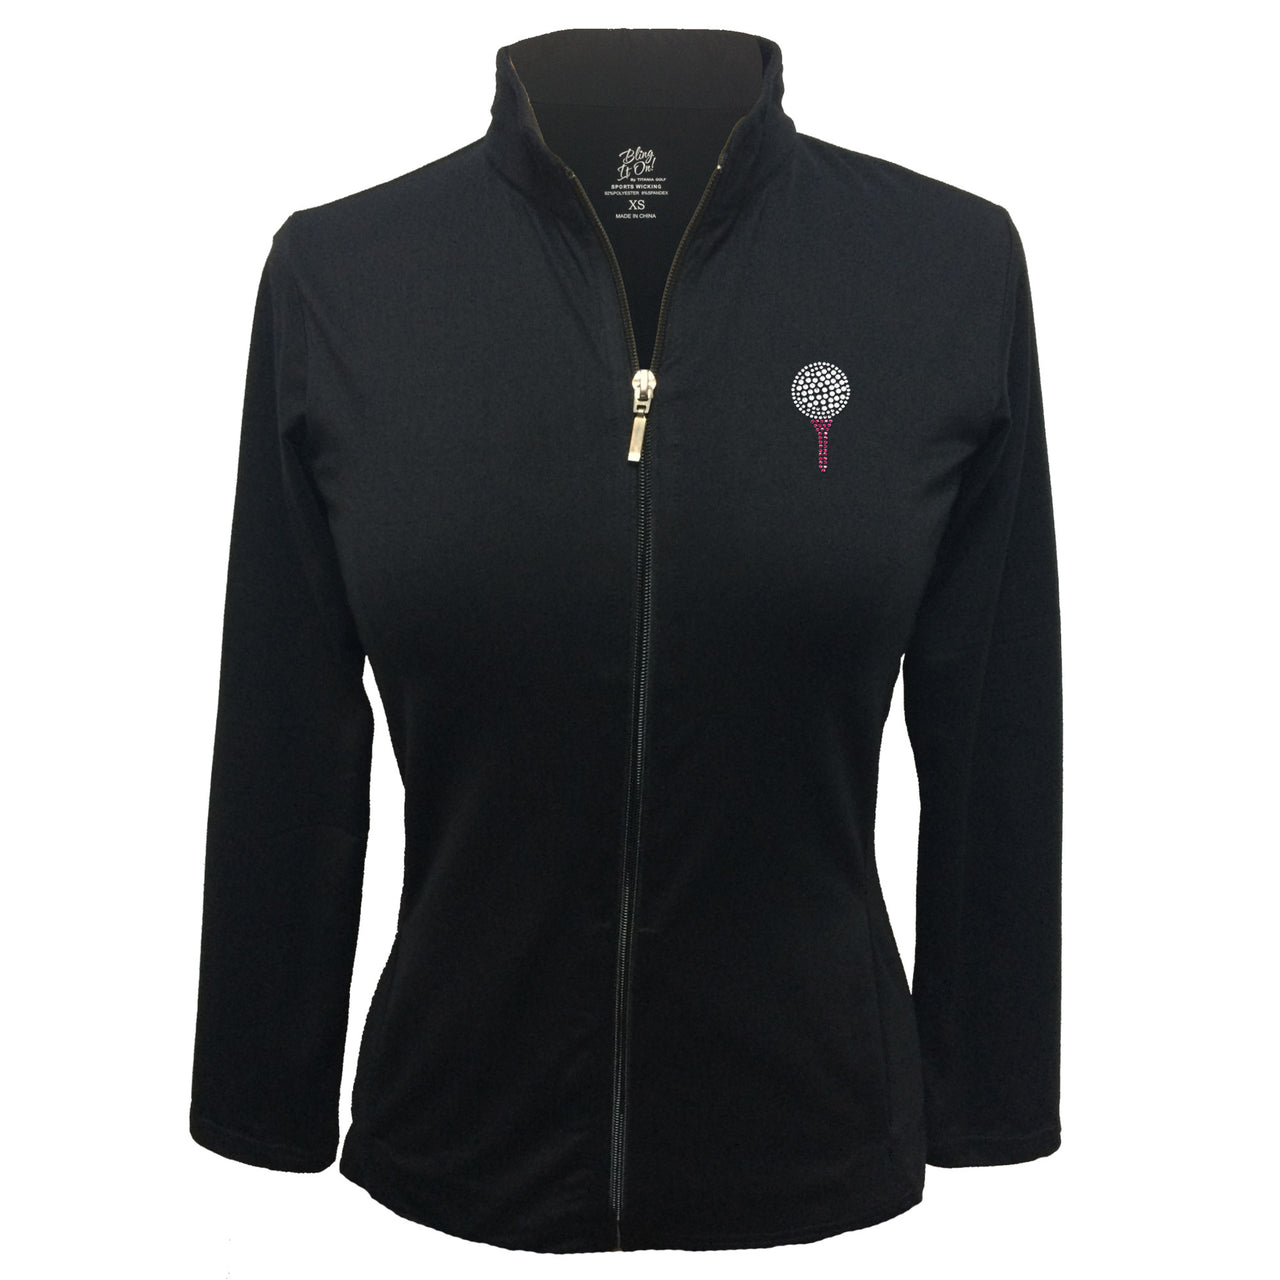 Lady's Jacket - Ball and Tee Design